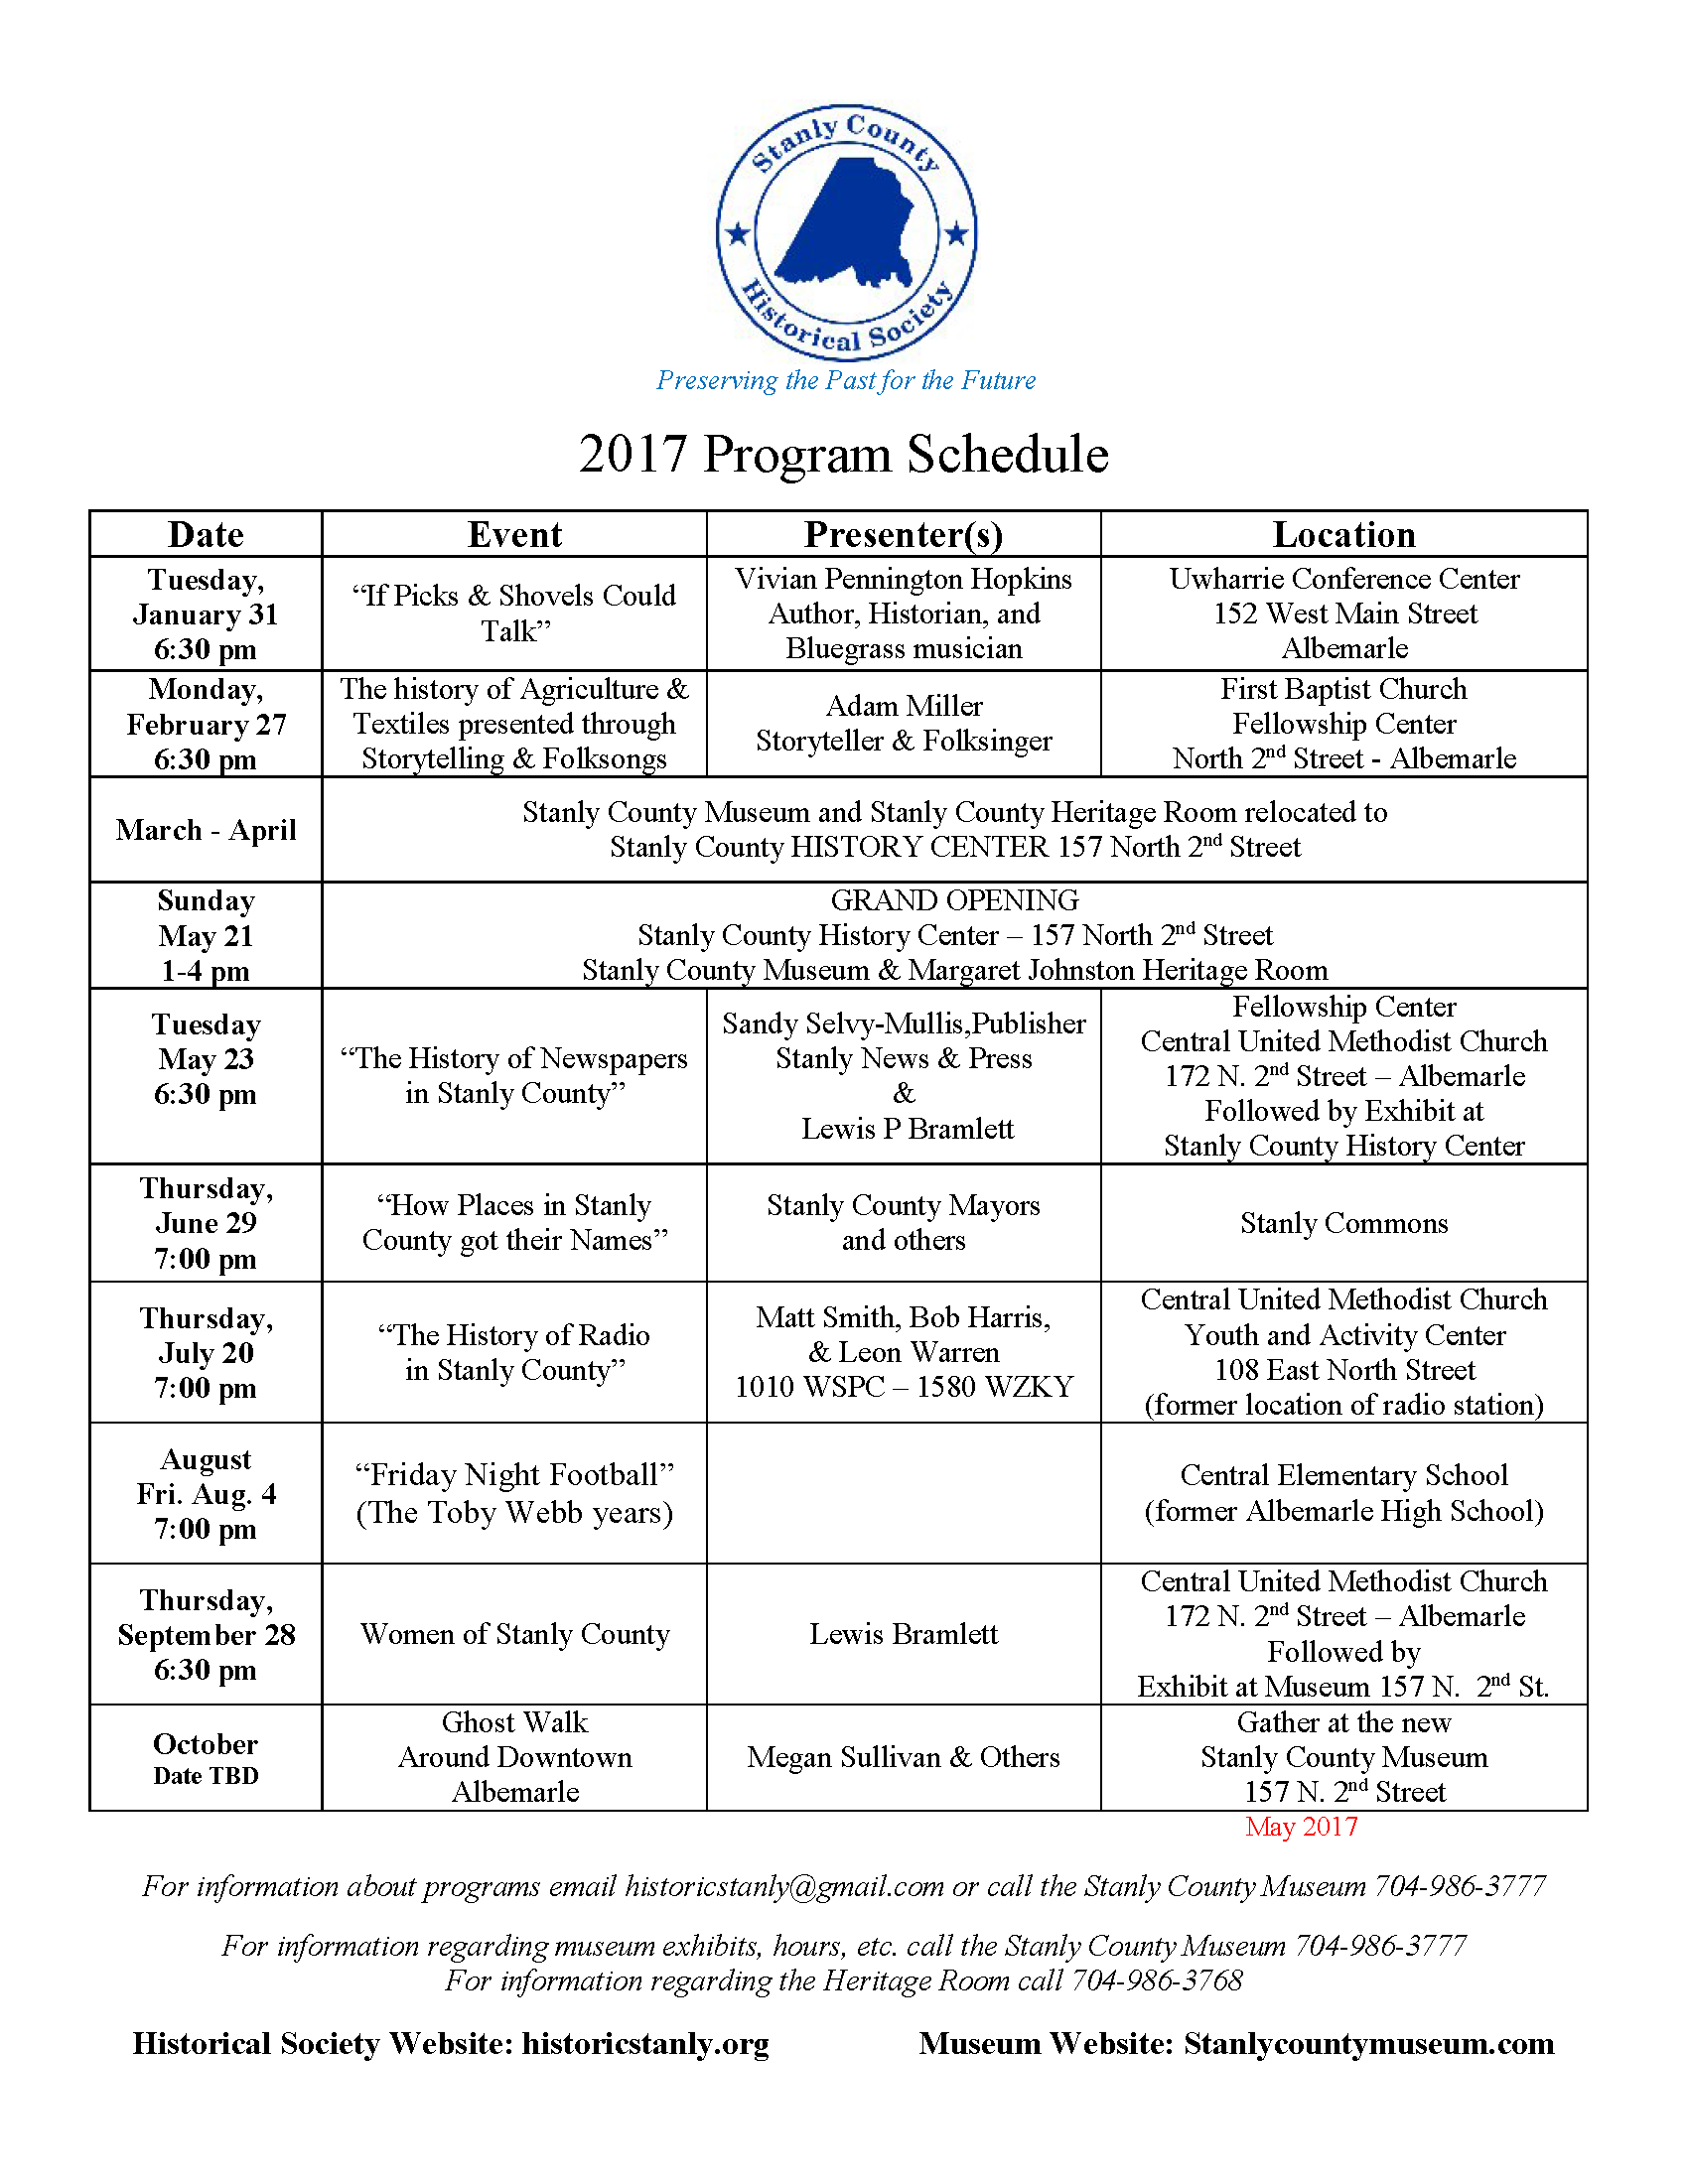 Stanly County Historical Society, Flyer for 2017 Programs